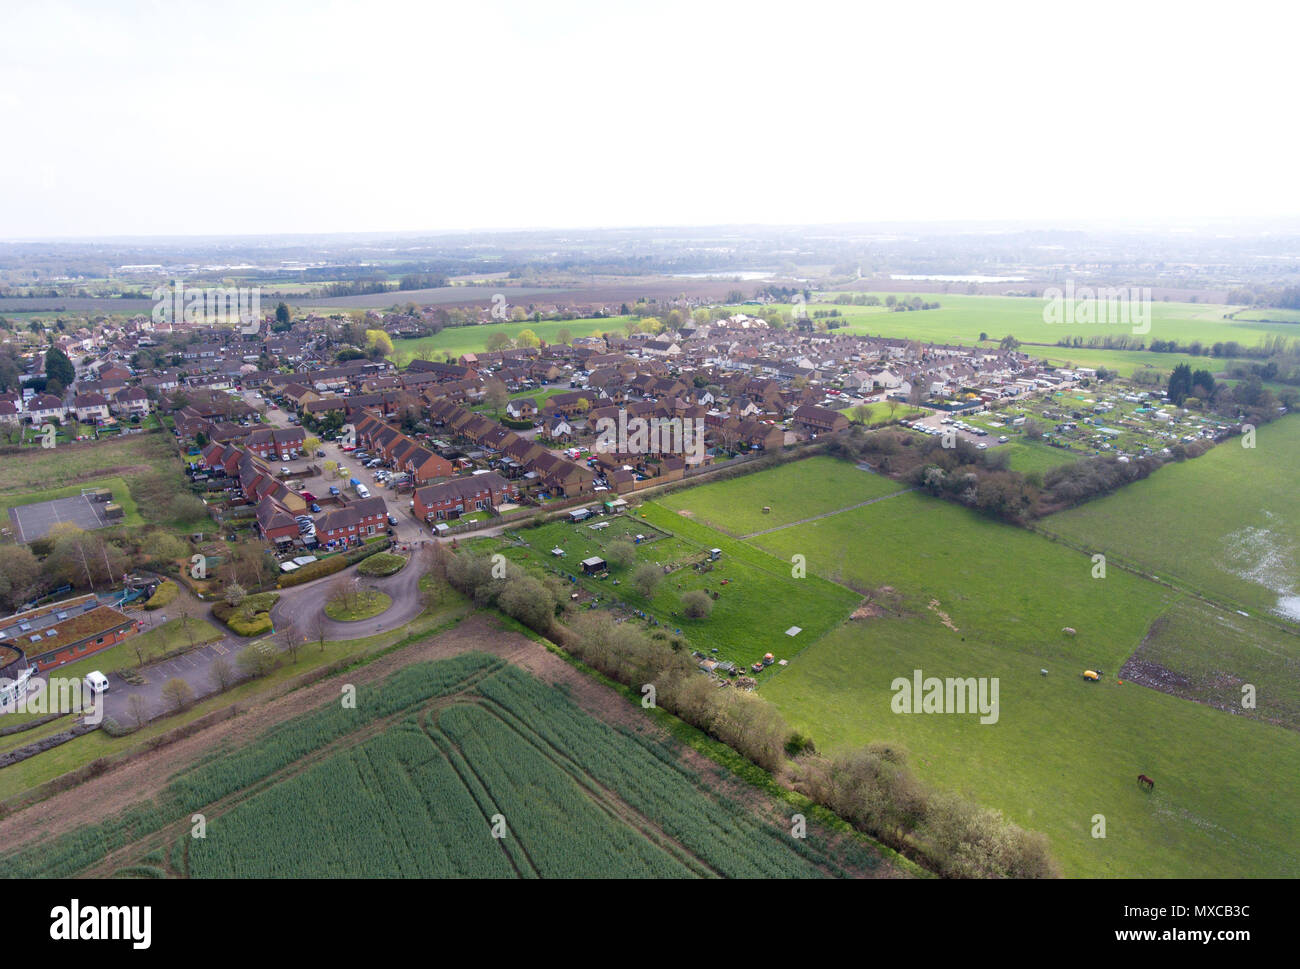 Aerial view of Eccles village near Aylesford in Mid Kent, UK. St Marks school bottom left and allotment gardens mid right - Stock Image